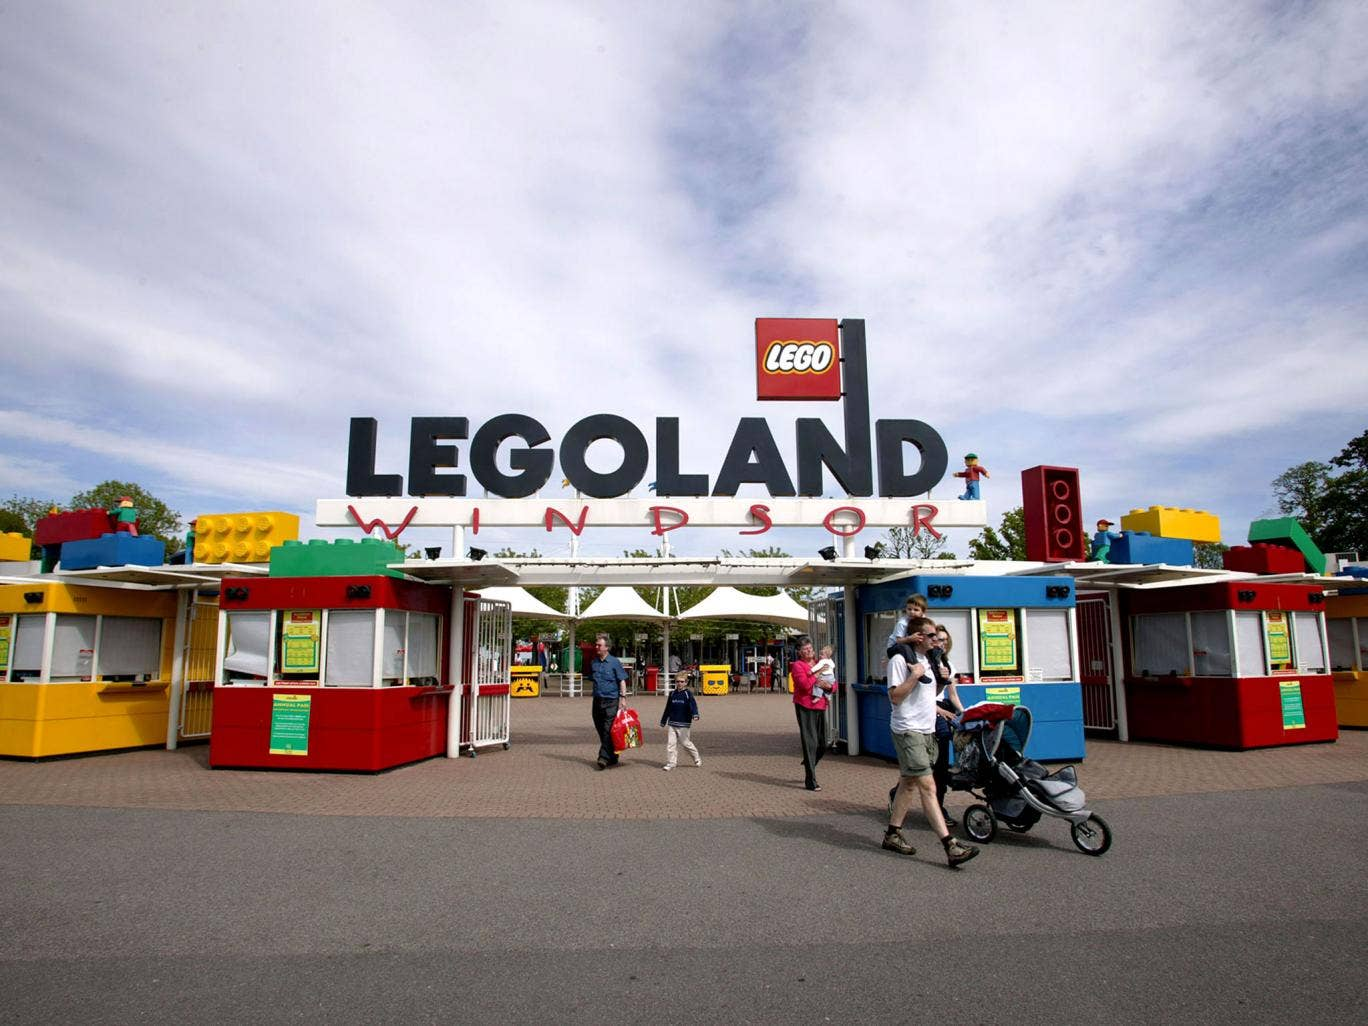 Legoland was forced to shut down its Facebook page after a number of offensive posts